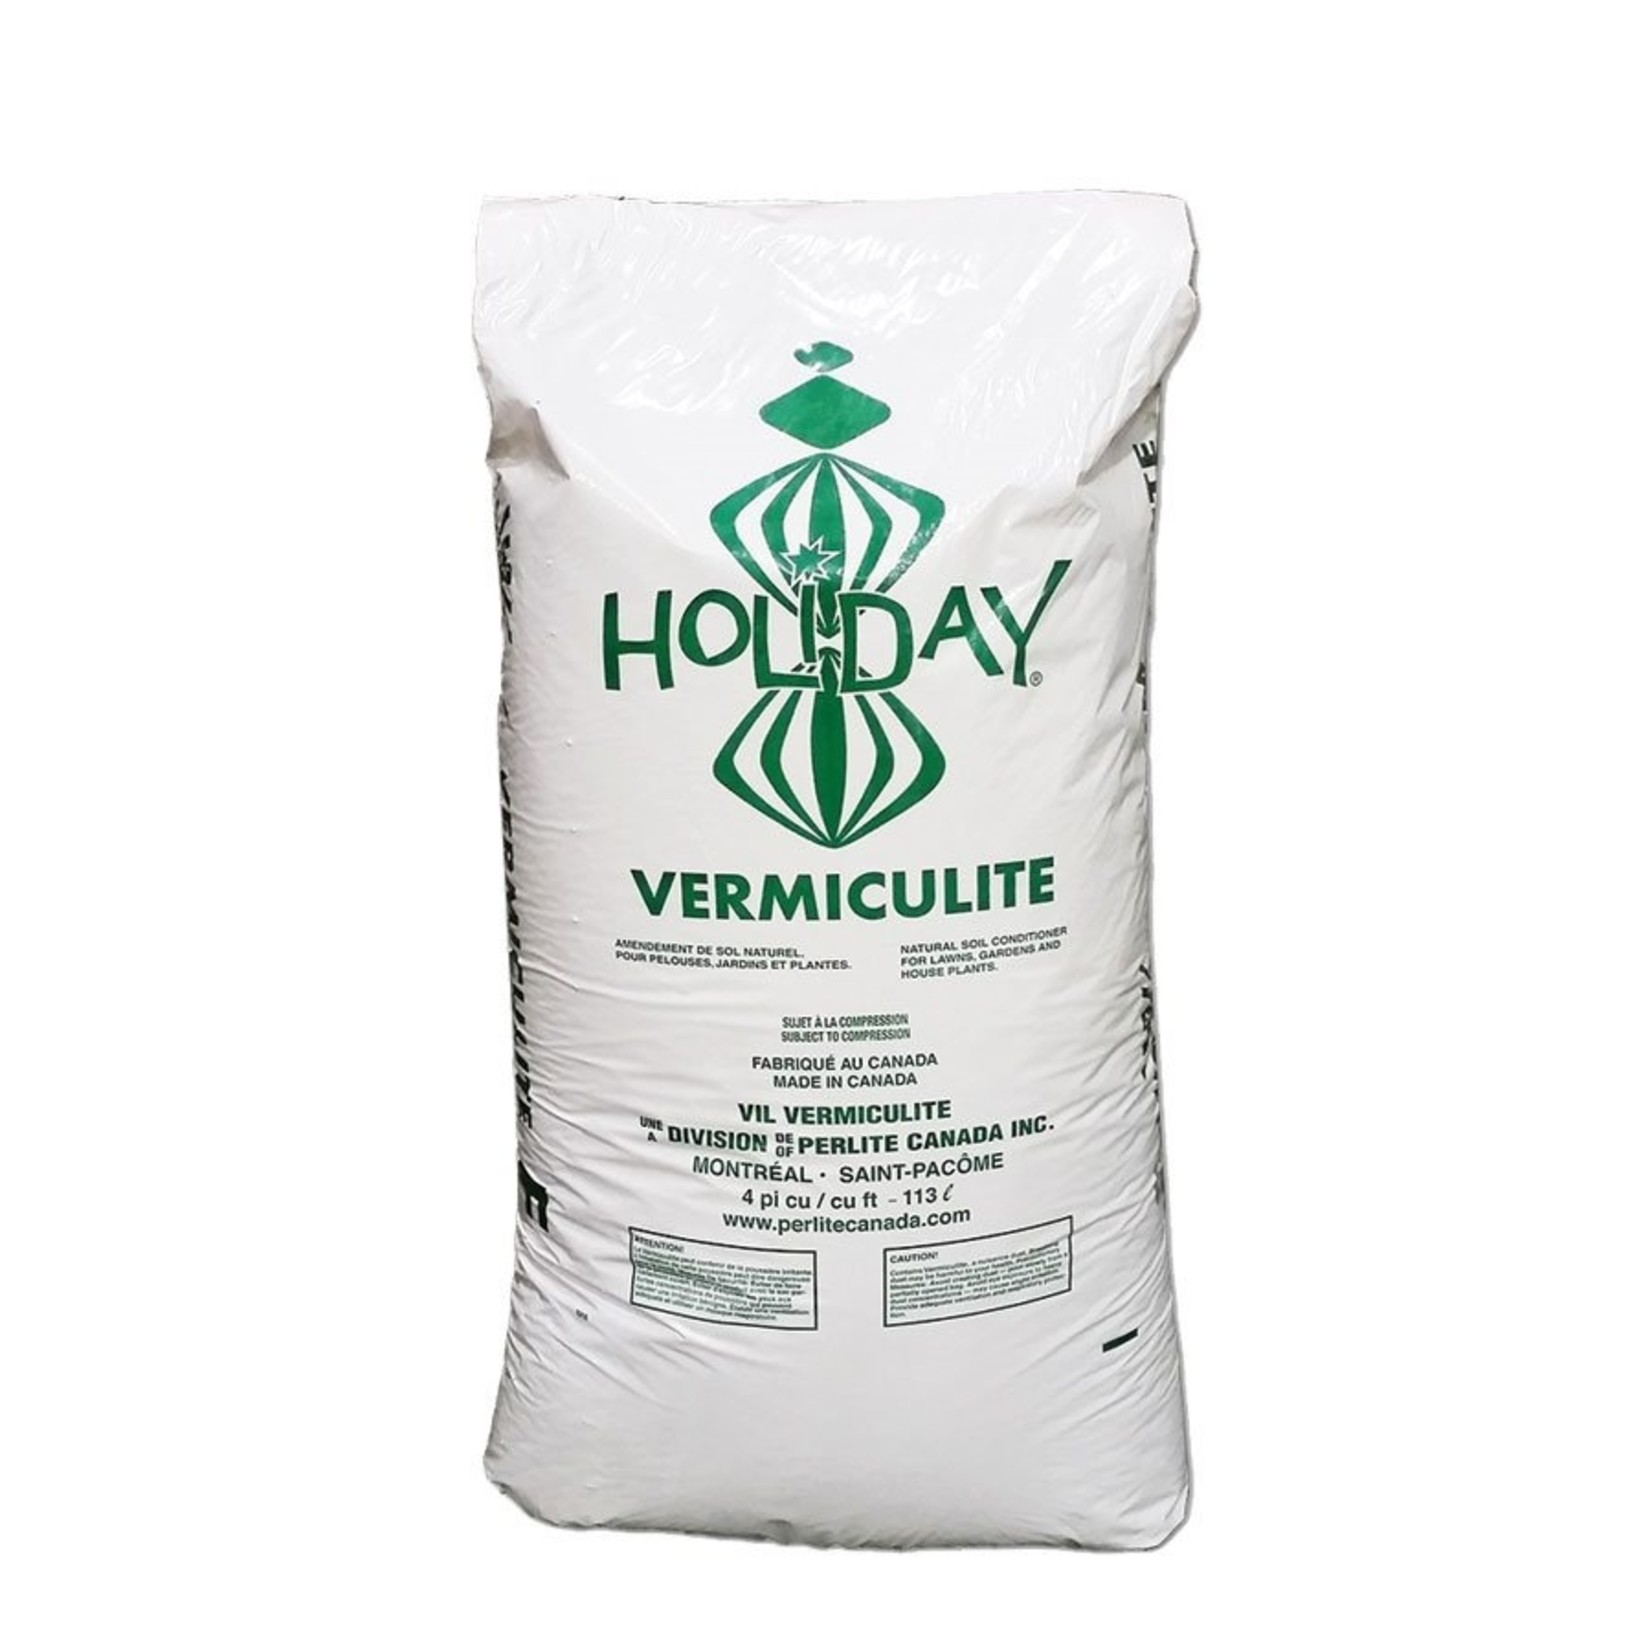 HOLIDAY VERMICULITE 112L